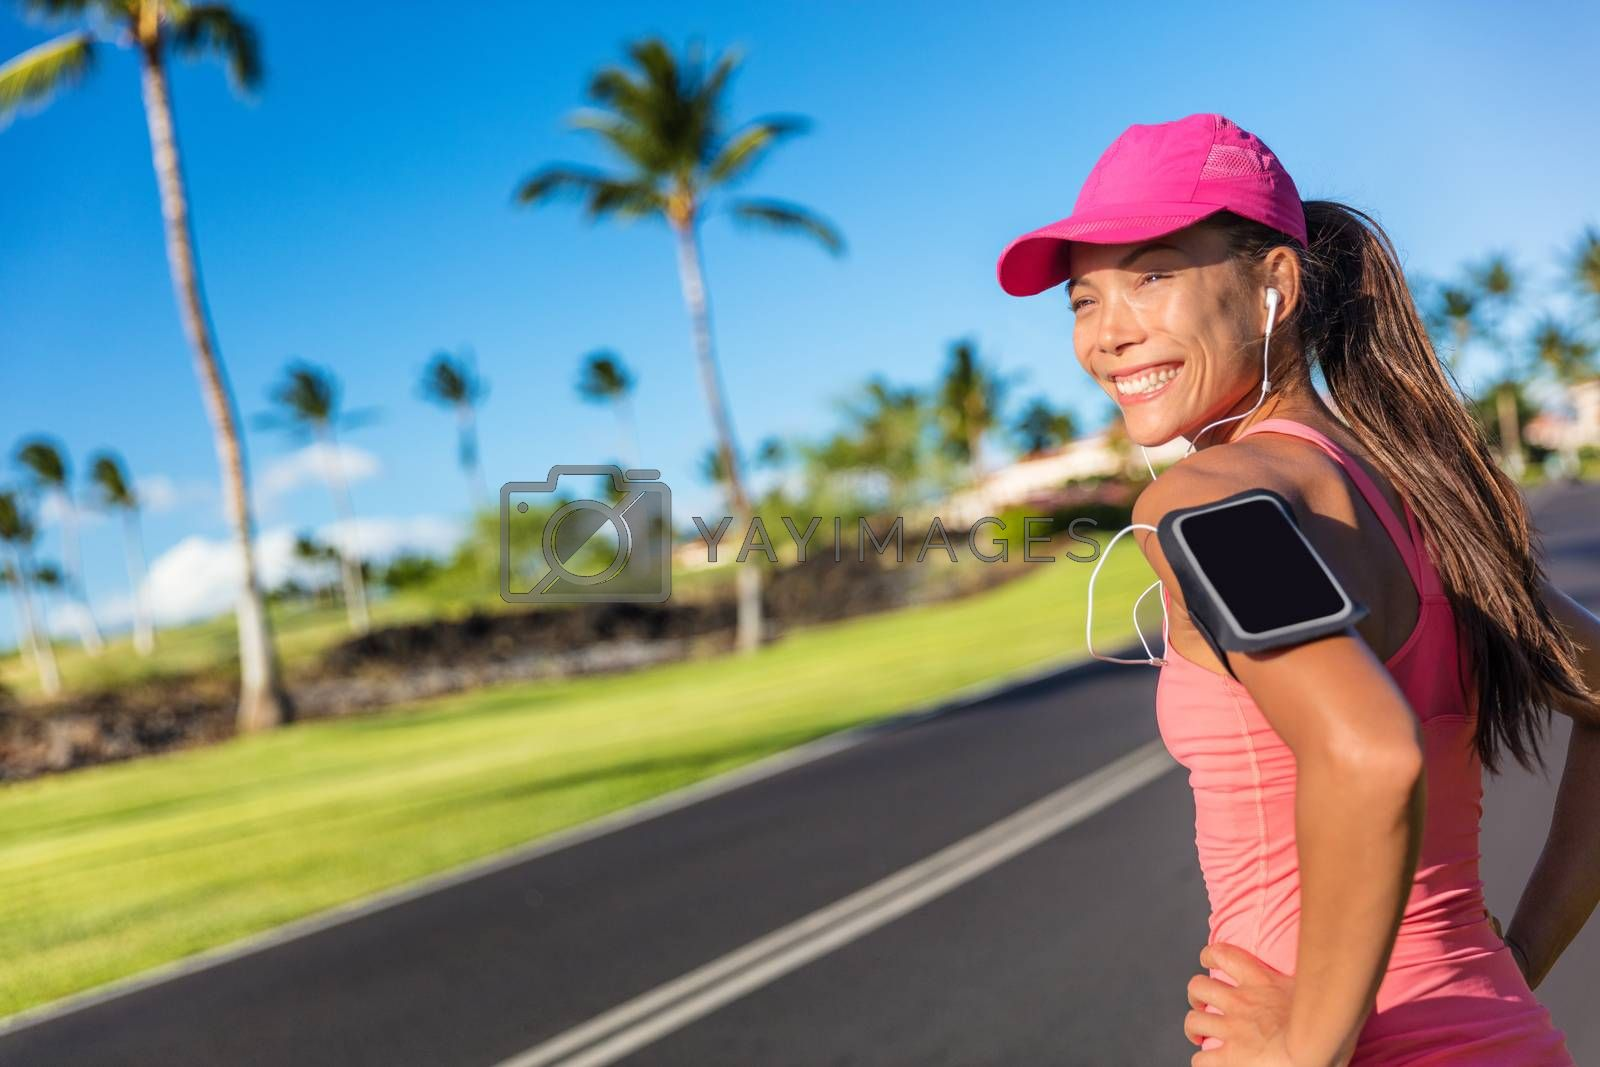 Fitness motivation running music woman runner. Happy jogging girl listening to smartphone app with earphones. Asian athlete wearing cap and armband smart phone holder outdoor on city road.